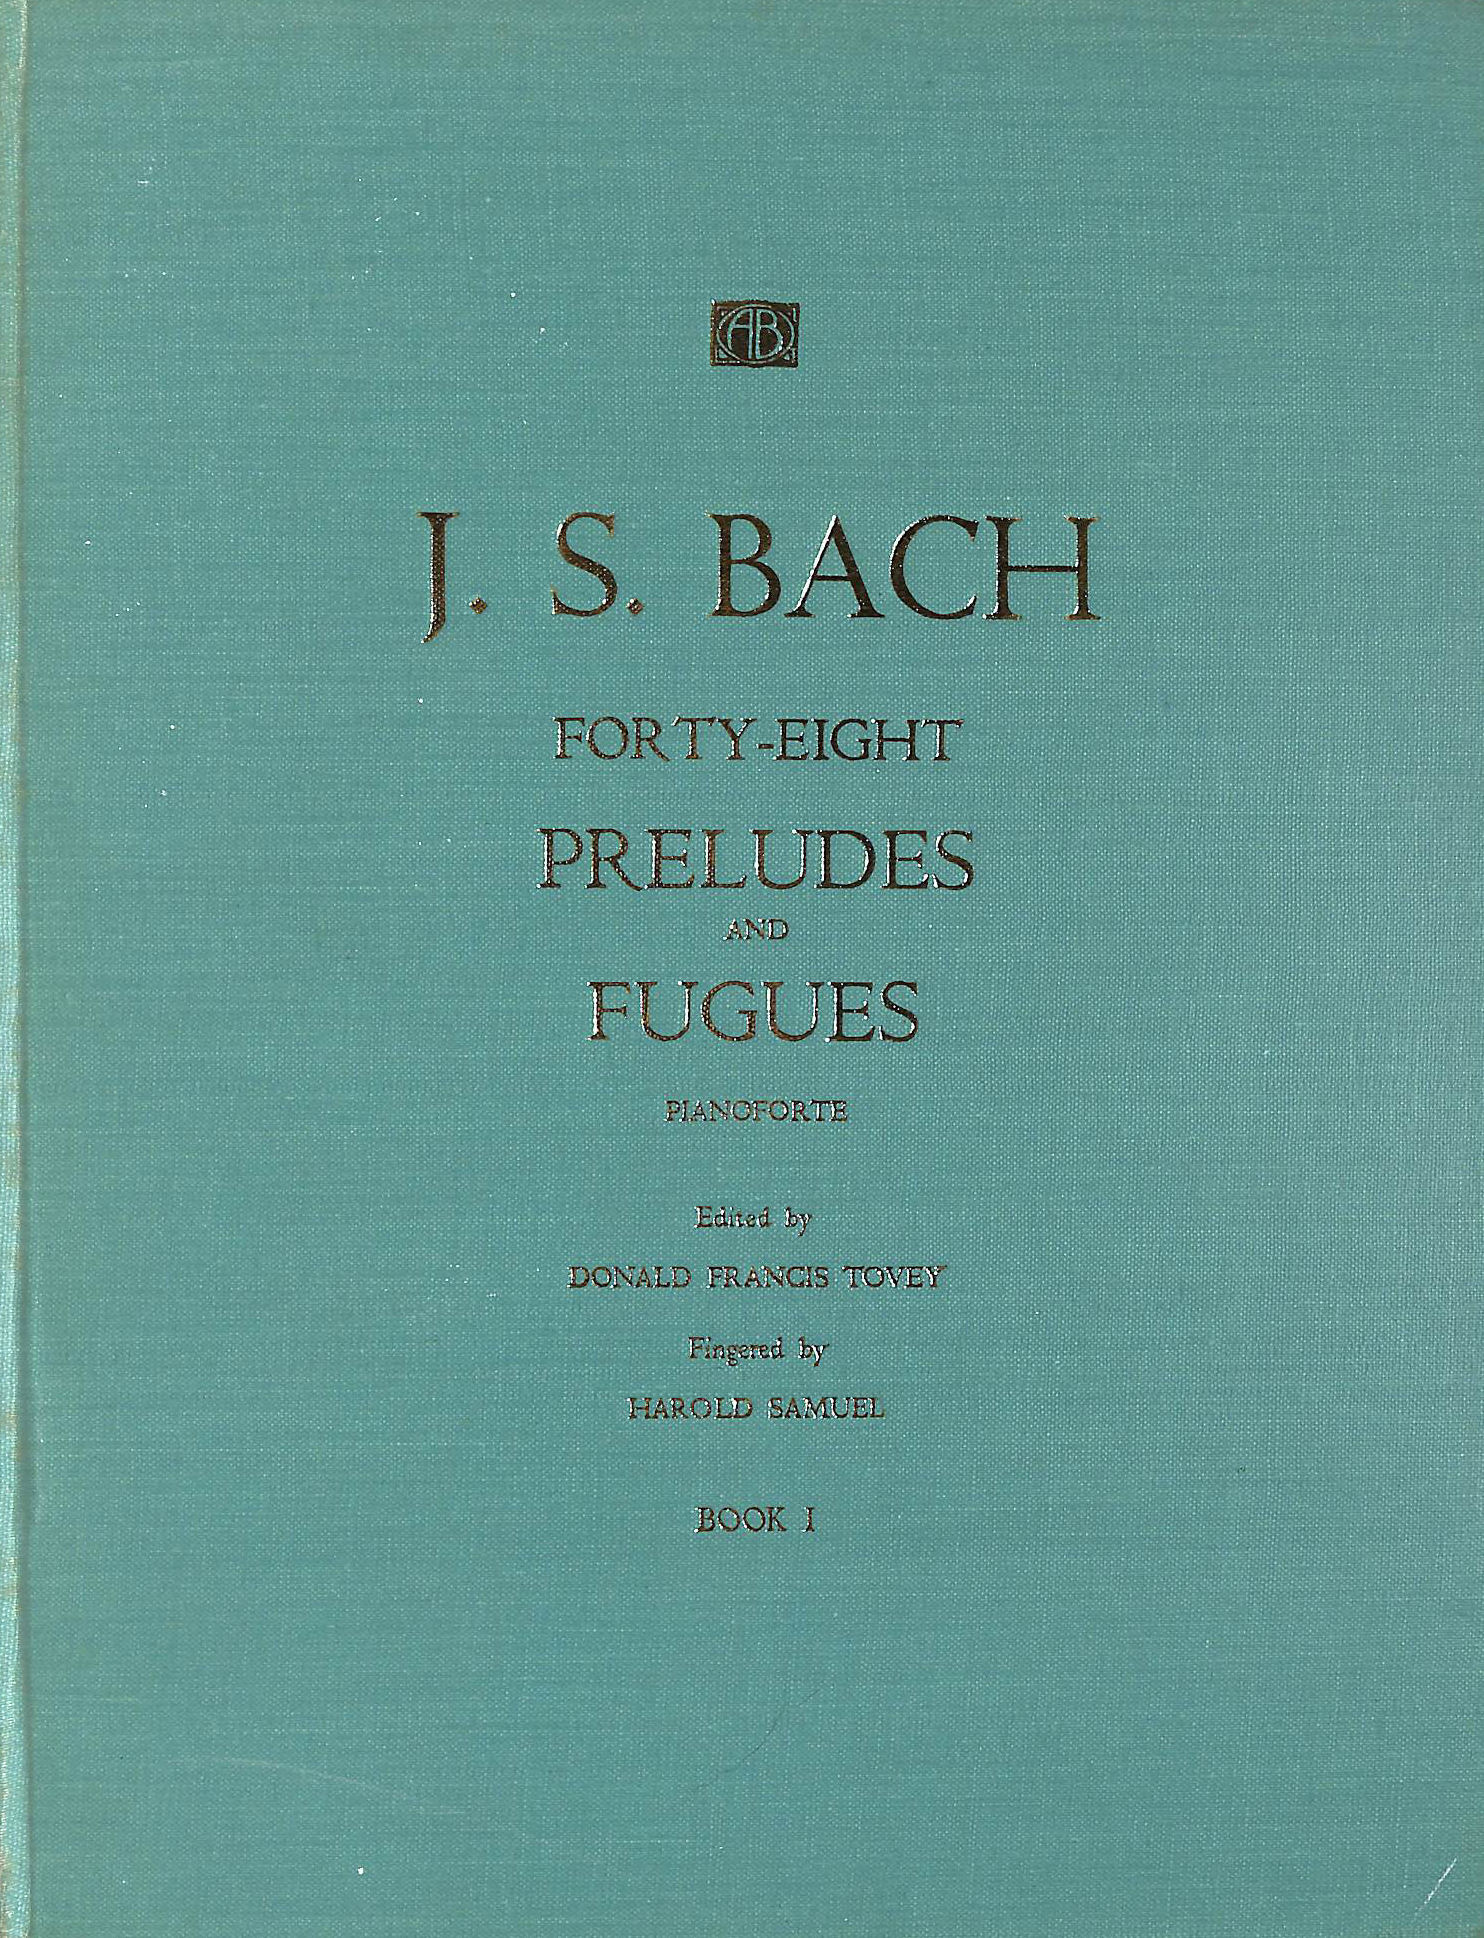 Image for Bach Forty-Eight Preludes and Fugues Book 1 (Tovey and Samuel)